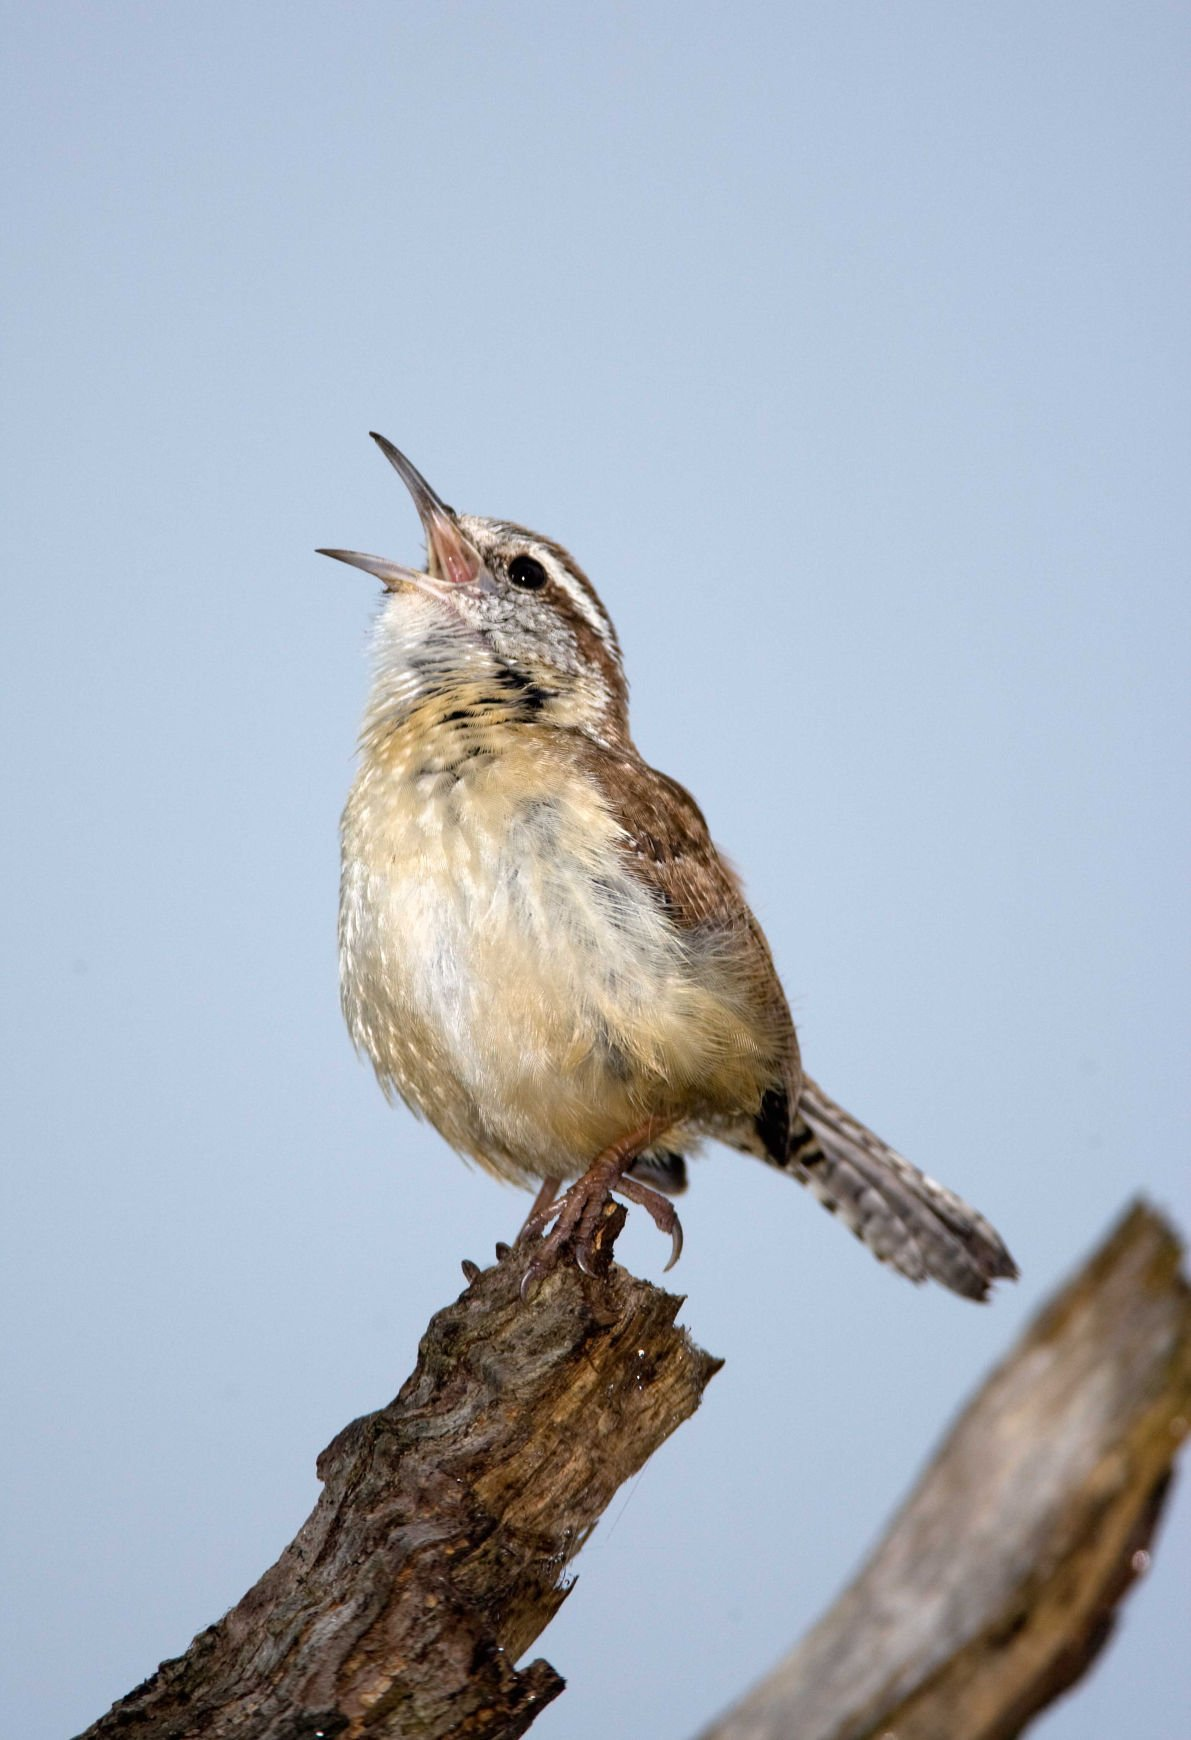 Nature Notes A Clever Little Brown Bird Home And Garden Victoriaadvocate Com